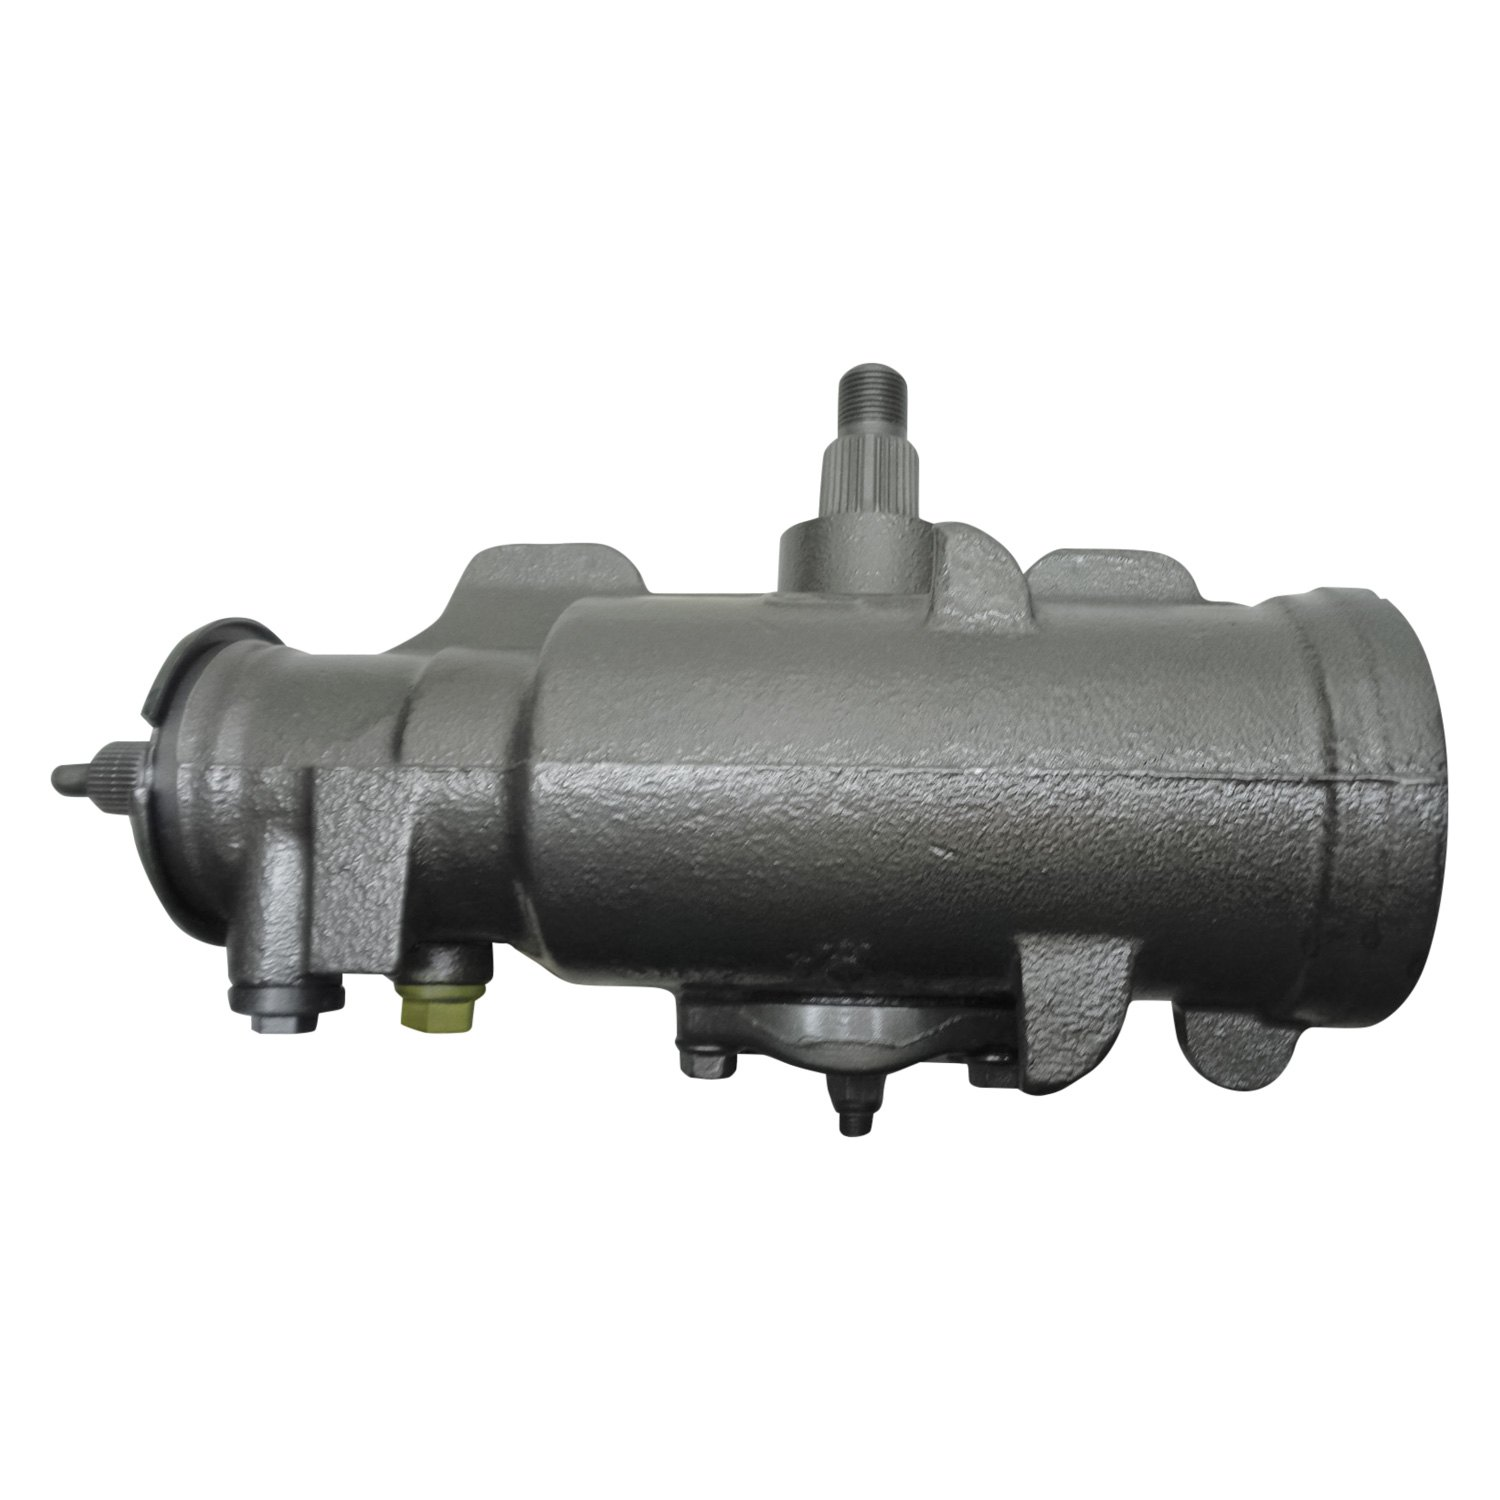 Remanufactured Power Steering Gear Box Lares 1074